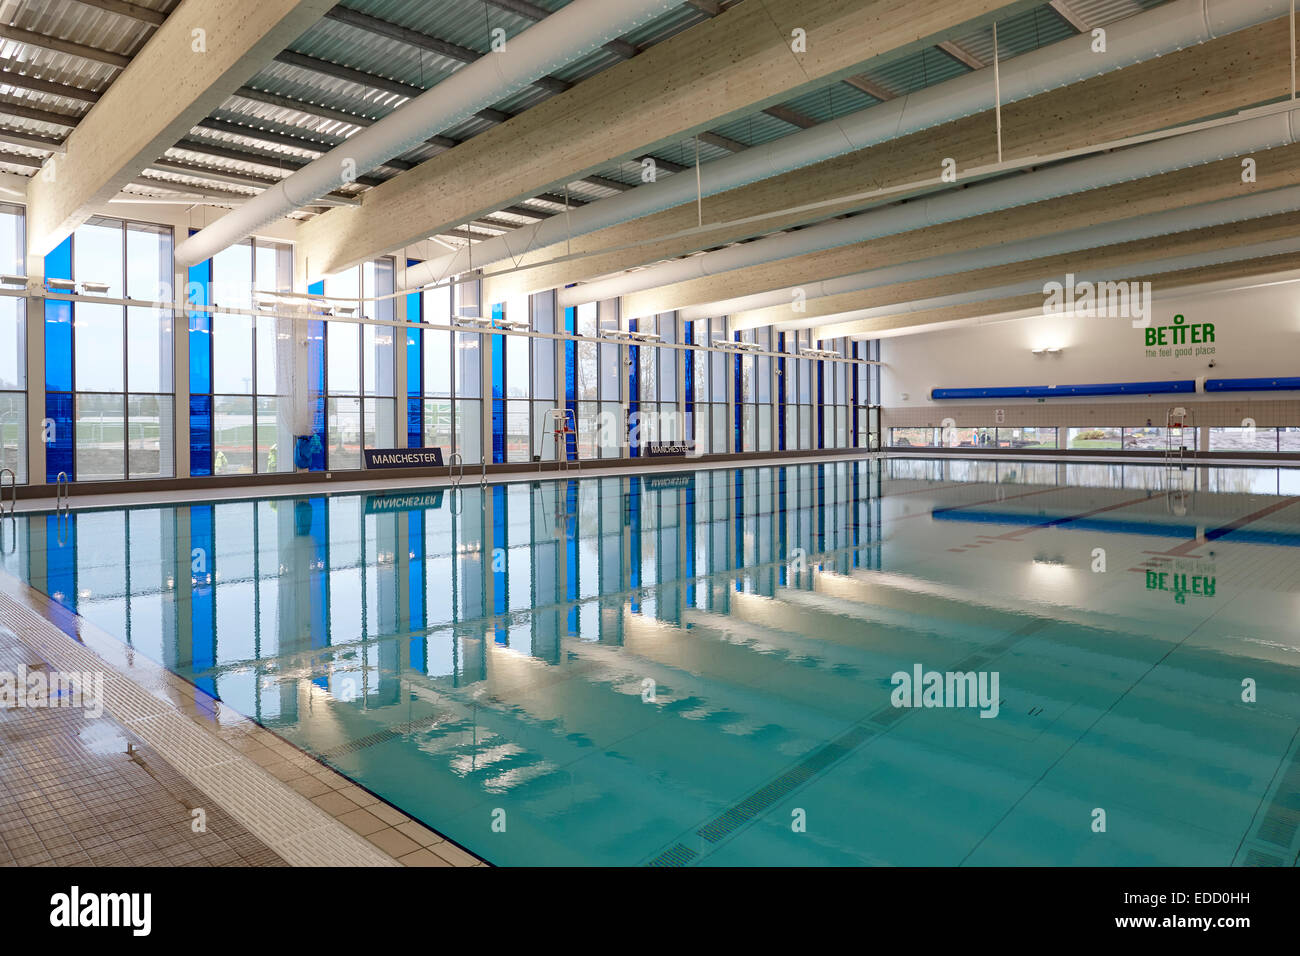 Manchester Beswick Interior Swimming Pool No People Stock Photo Royalty Free Image 77117869